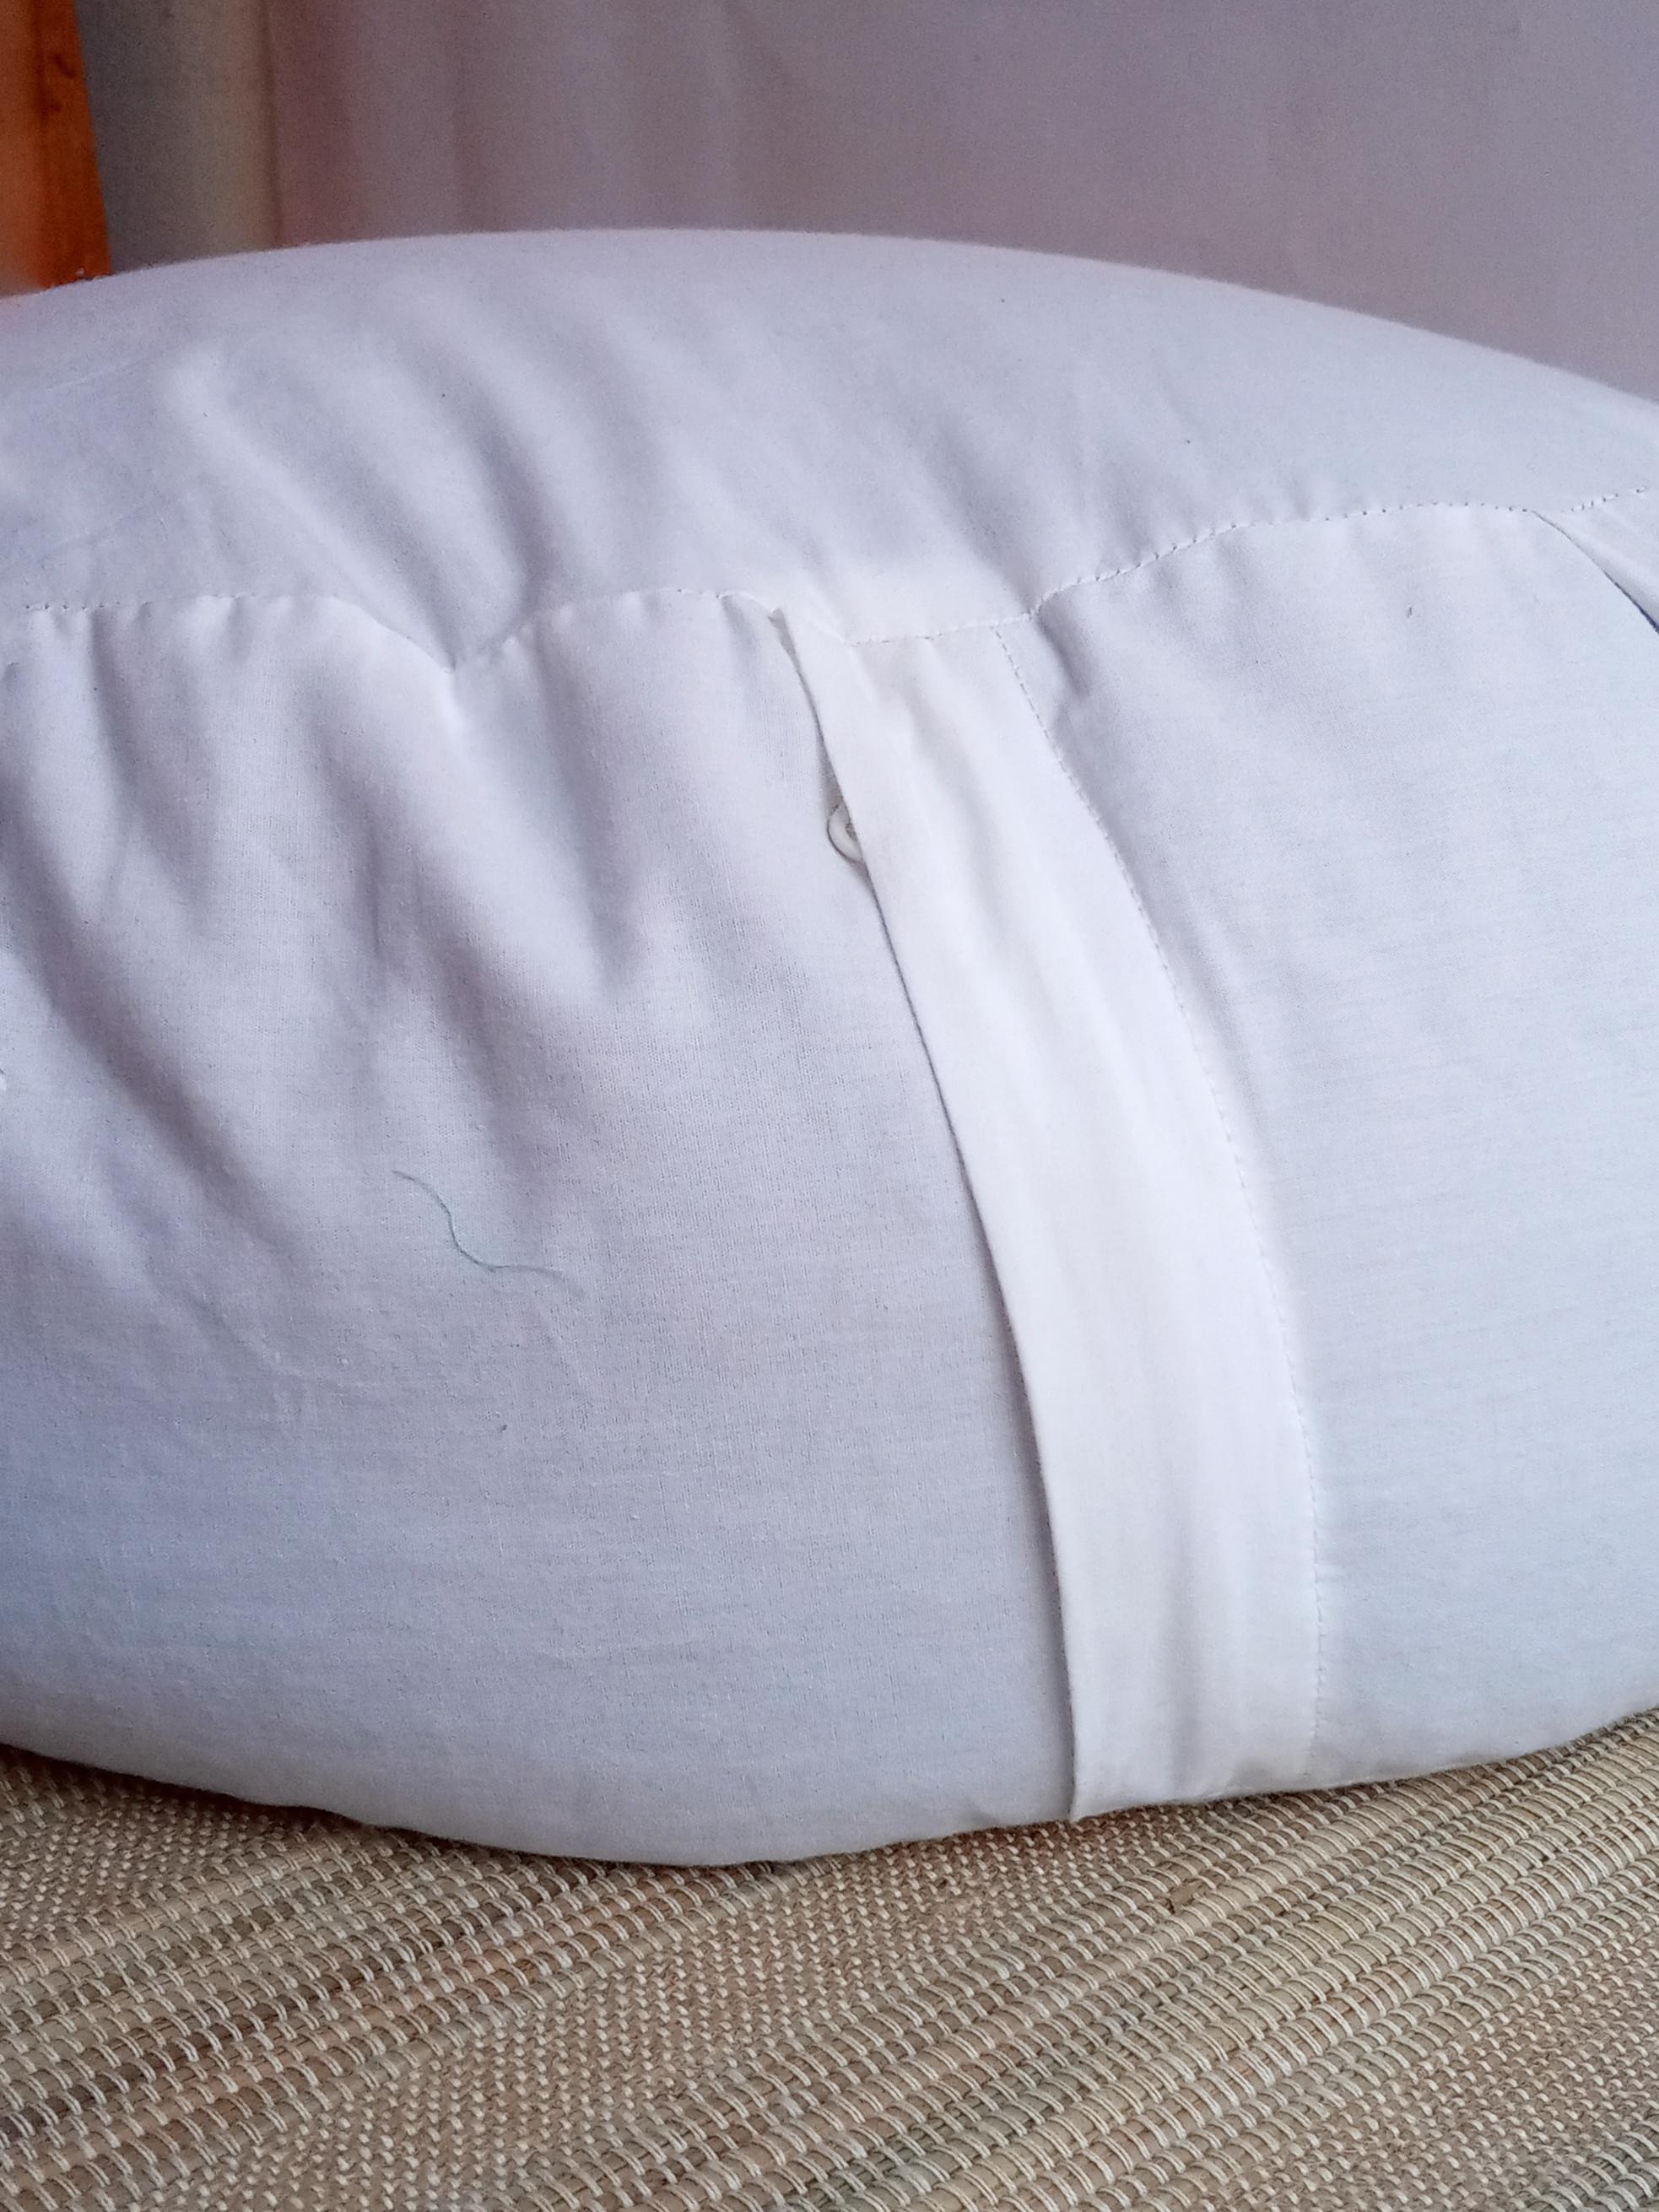 Meditation Cushion - Organic and Biodegradable